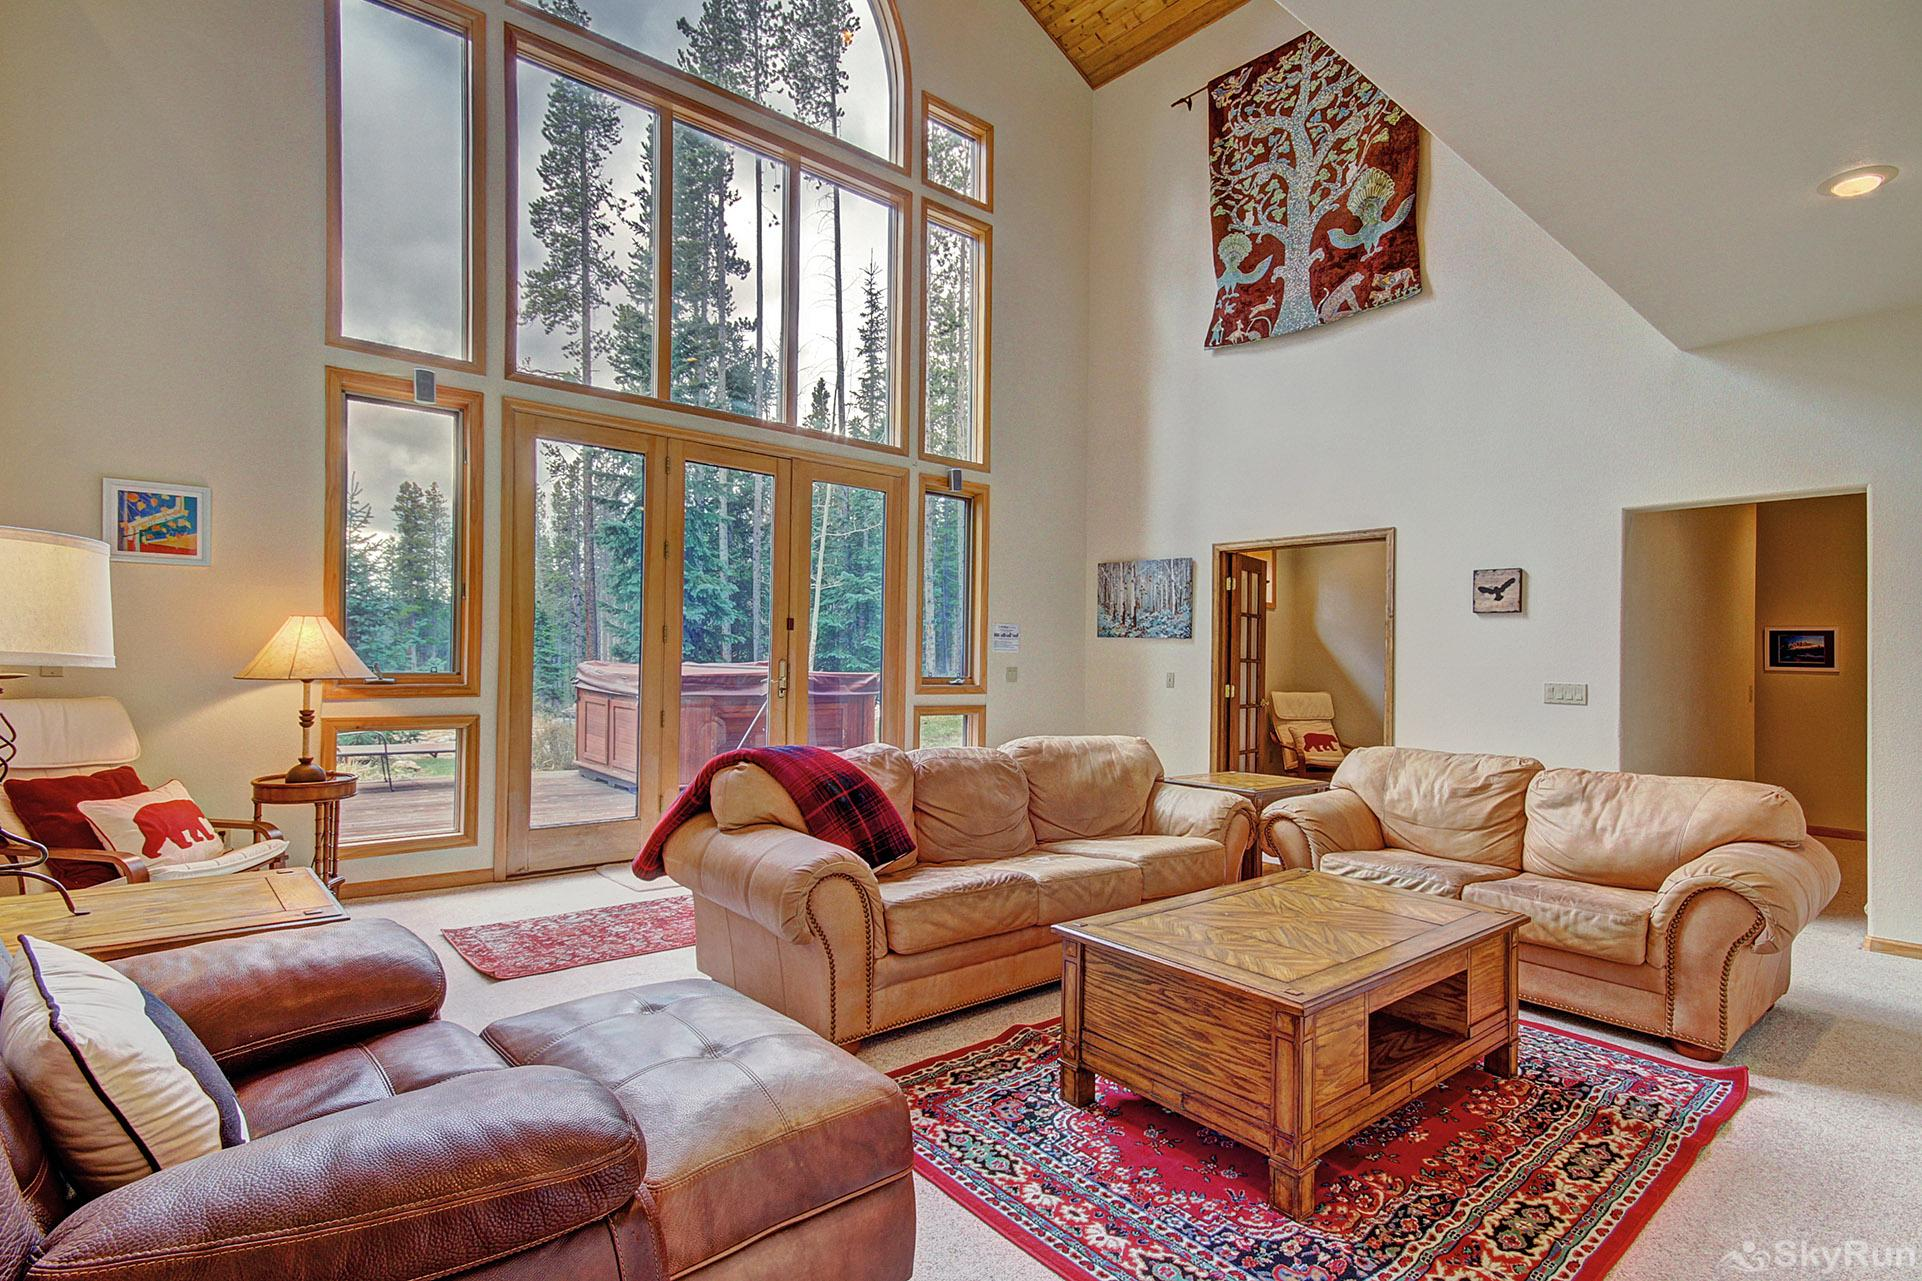 Secret Trail Lodge Large living area with lofted ceilings